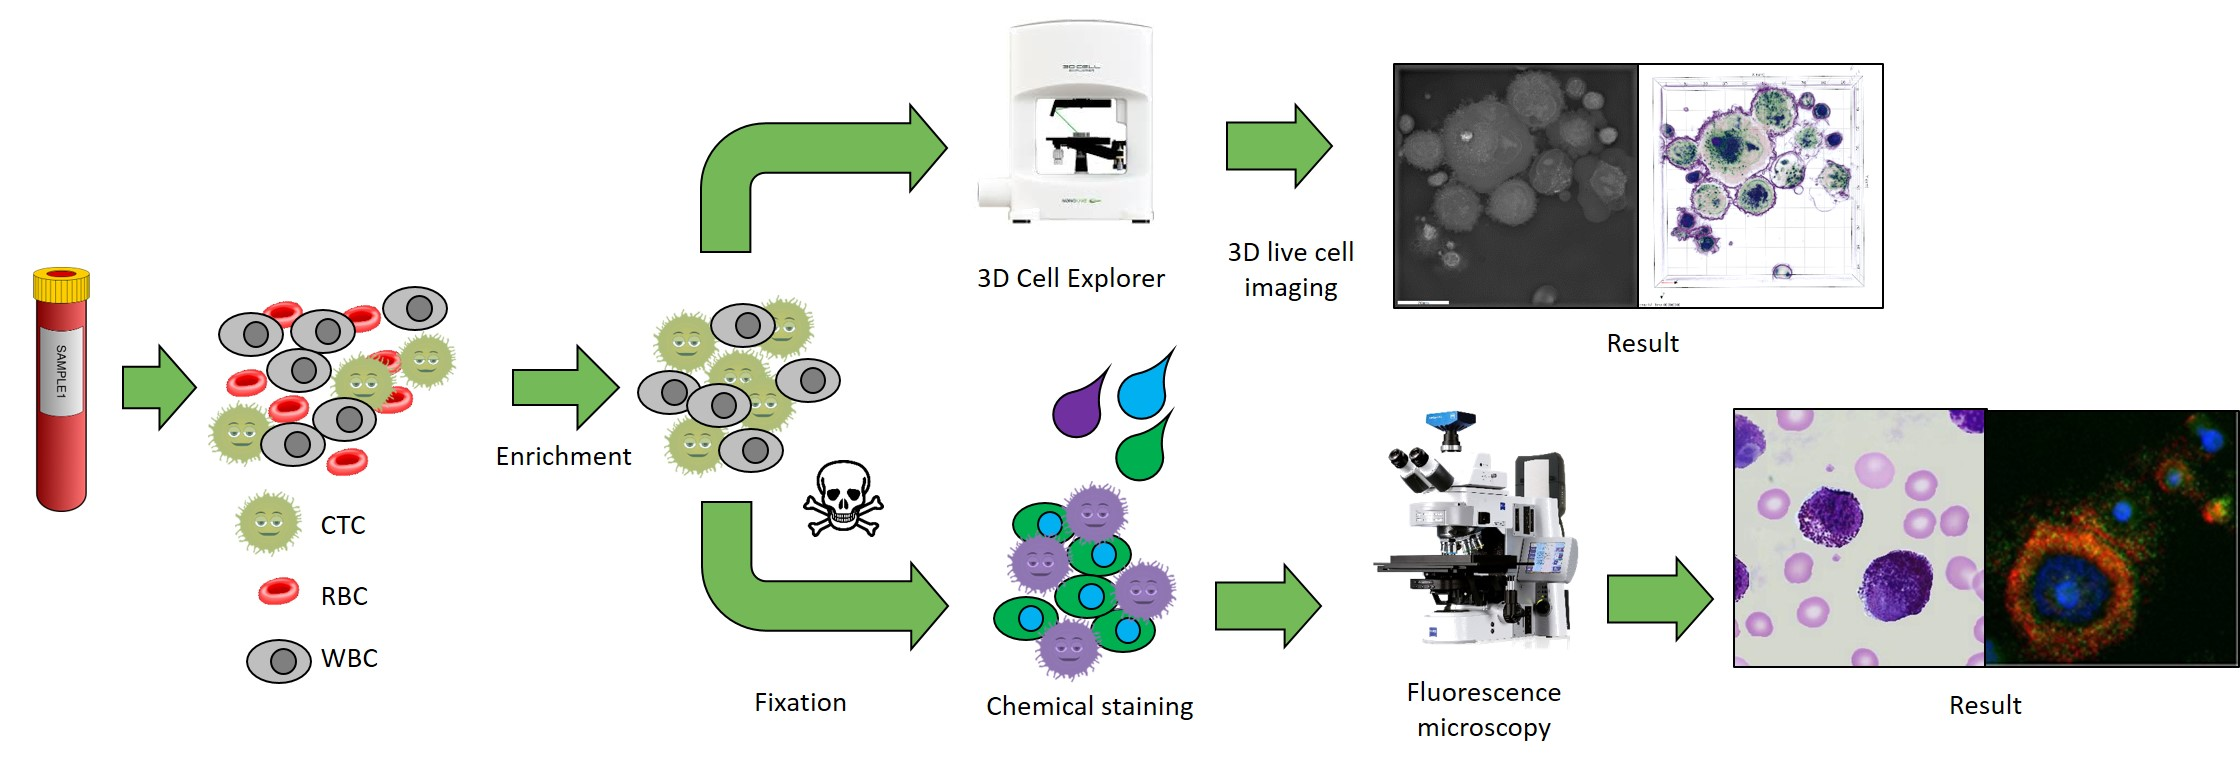 Work flow of CTCs enrichment, detection and characterization